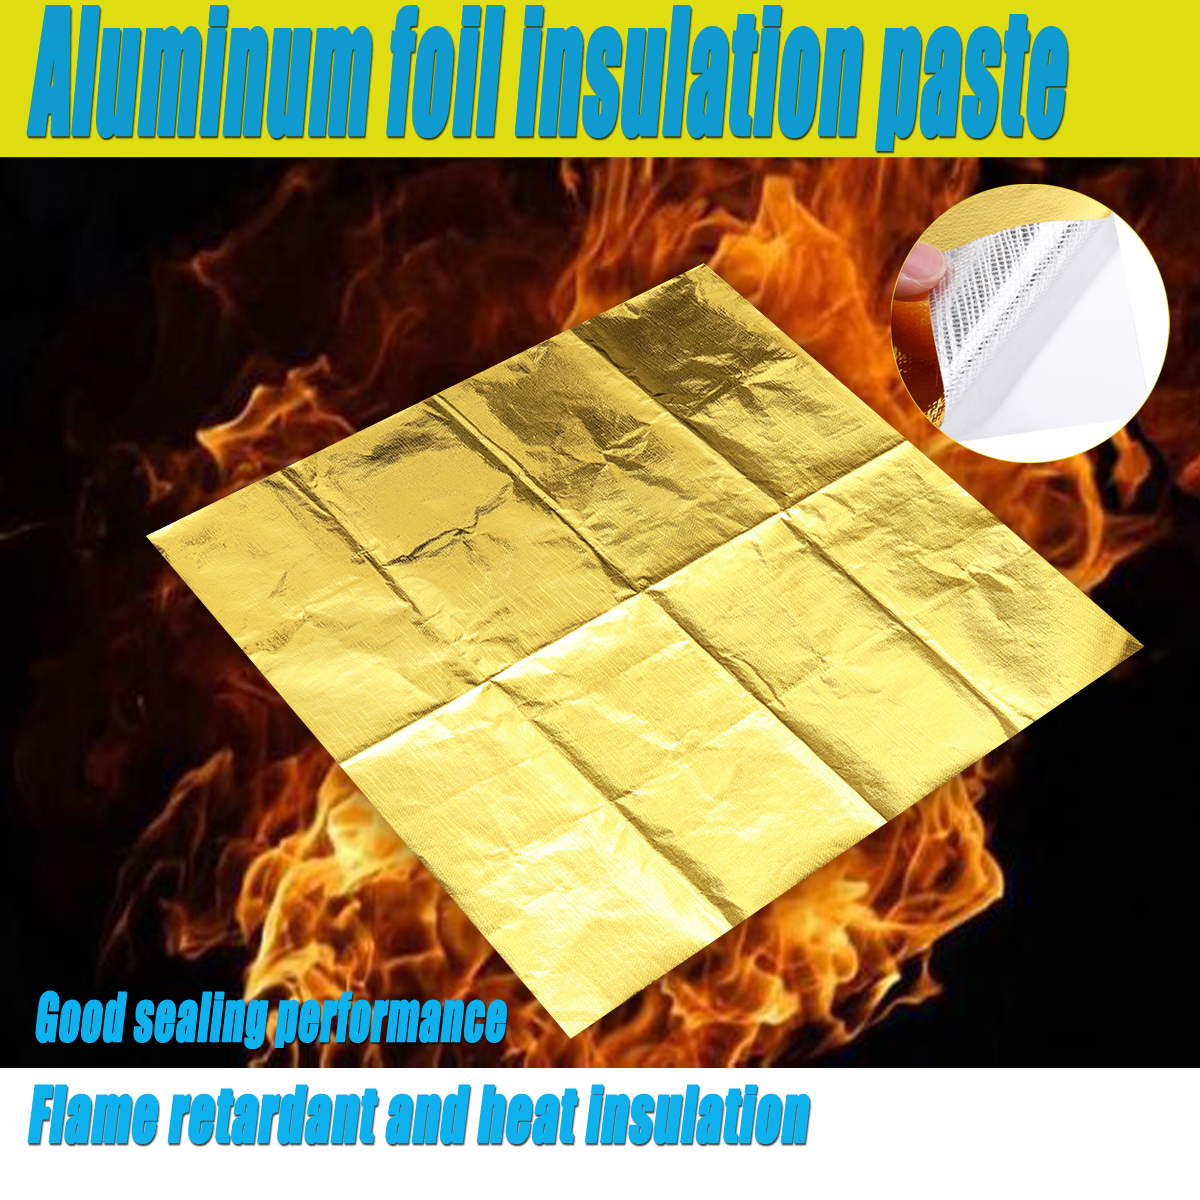 600x600mm Self Adhesive Reflective Tape Aluminum Foil Insulation High Temperature Heat Shield Wrap